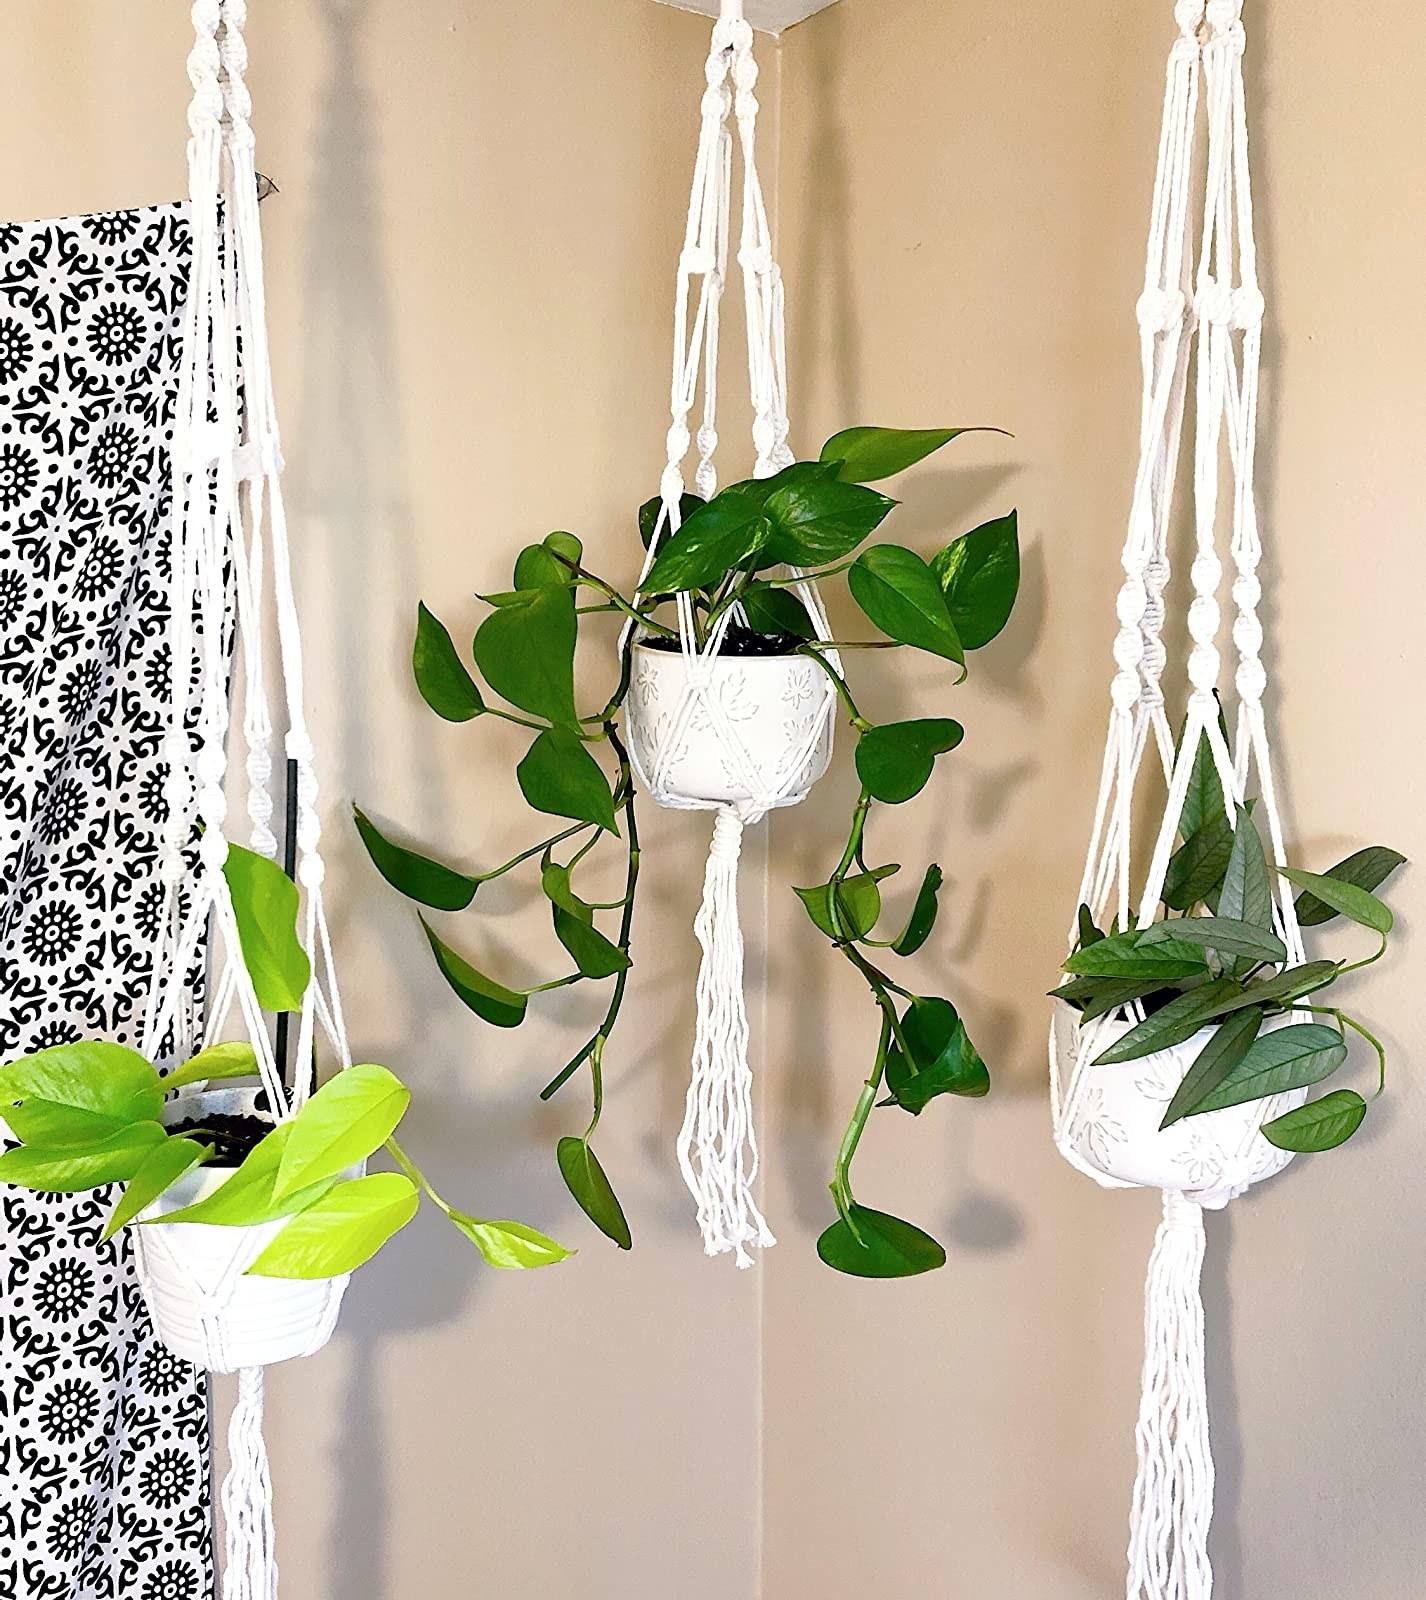 three plants hanging from the white macrame hangers